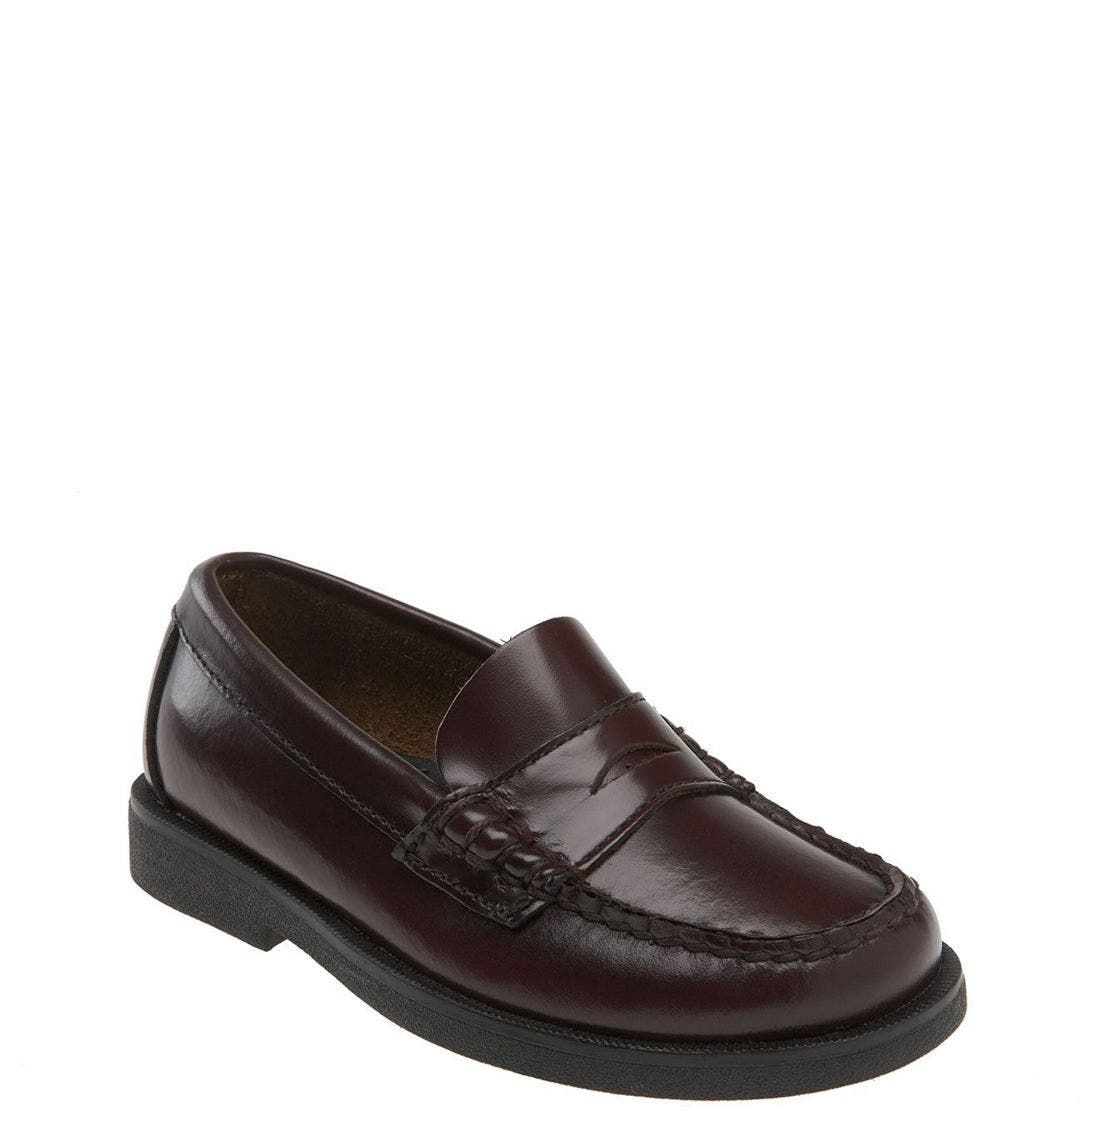 'Colton' Loafer,                             Main thumbnail 1, color,                             BURGUNDY